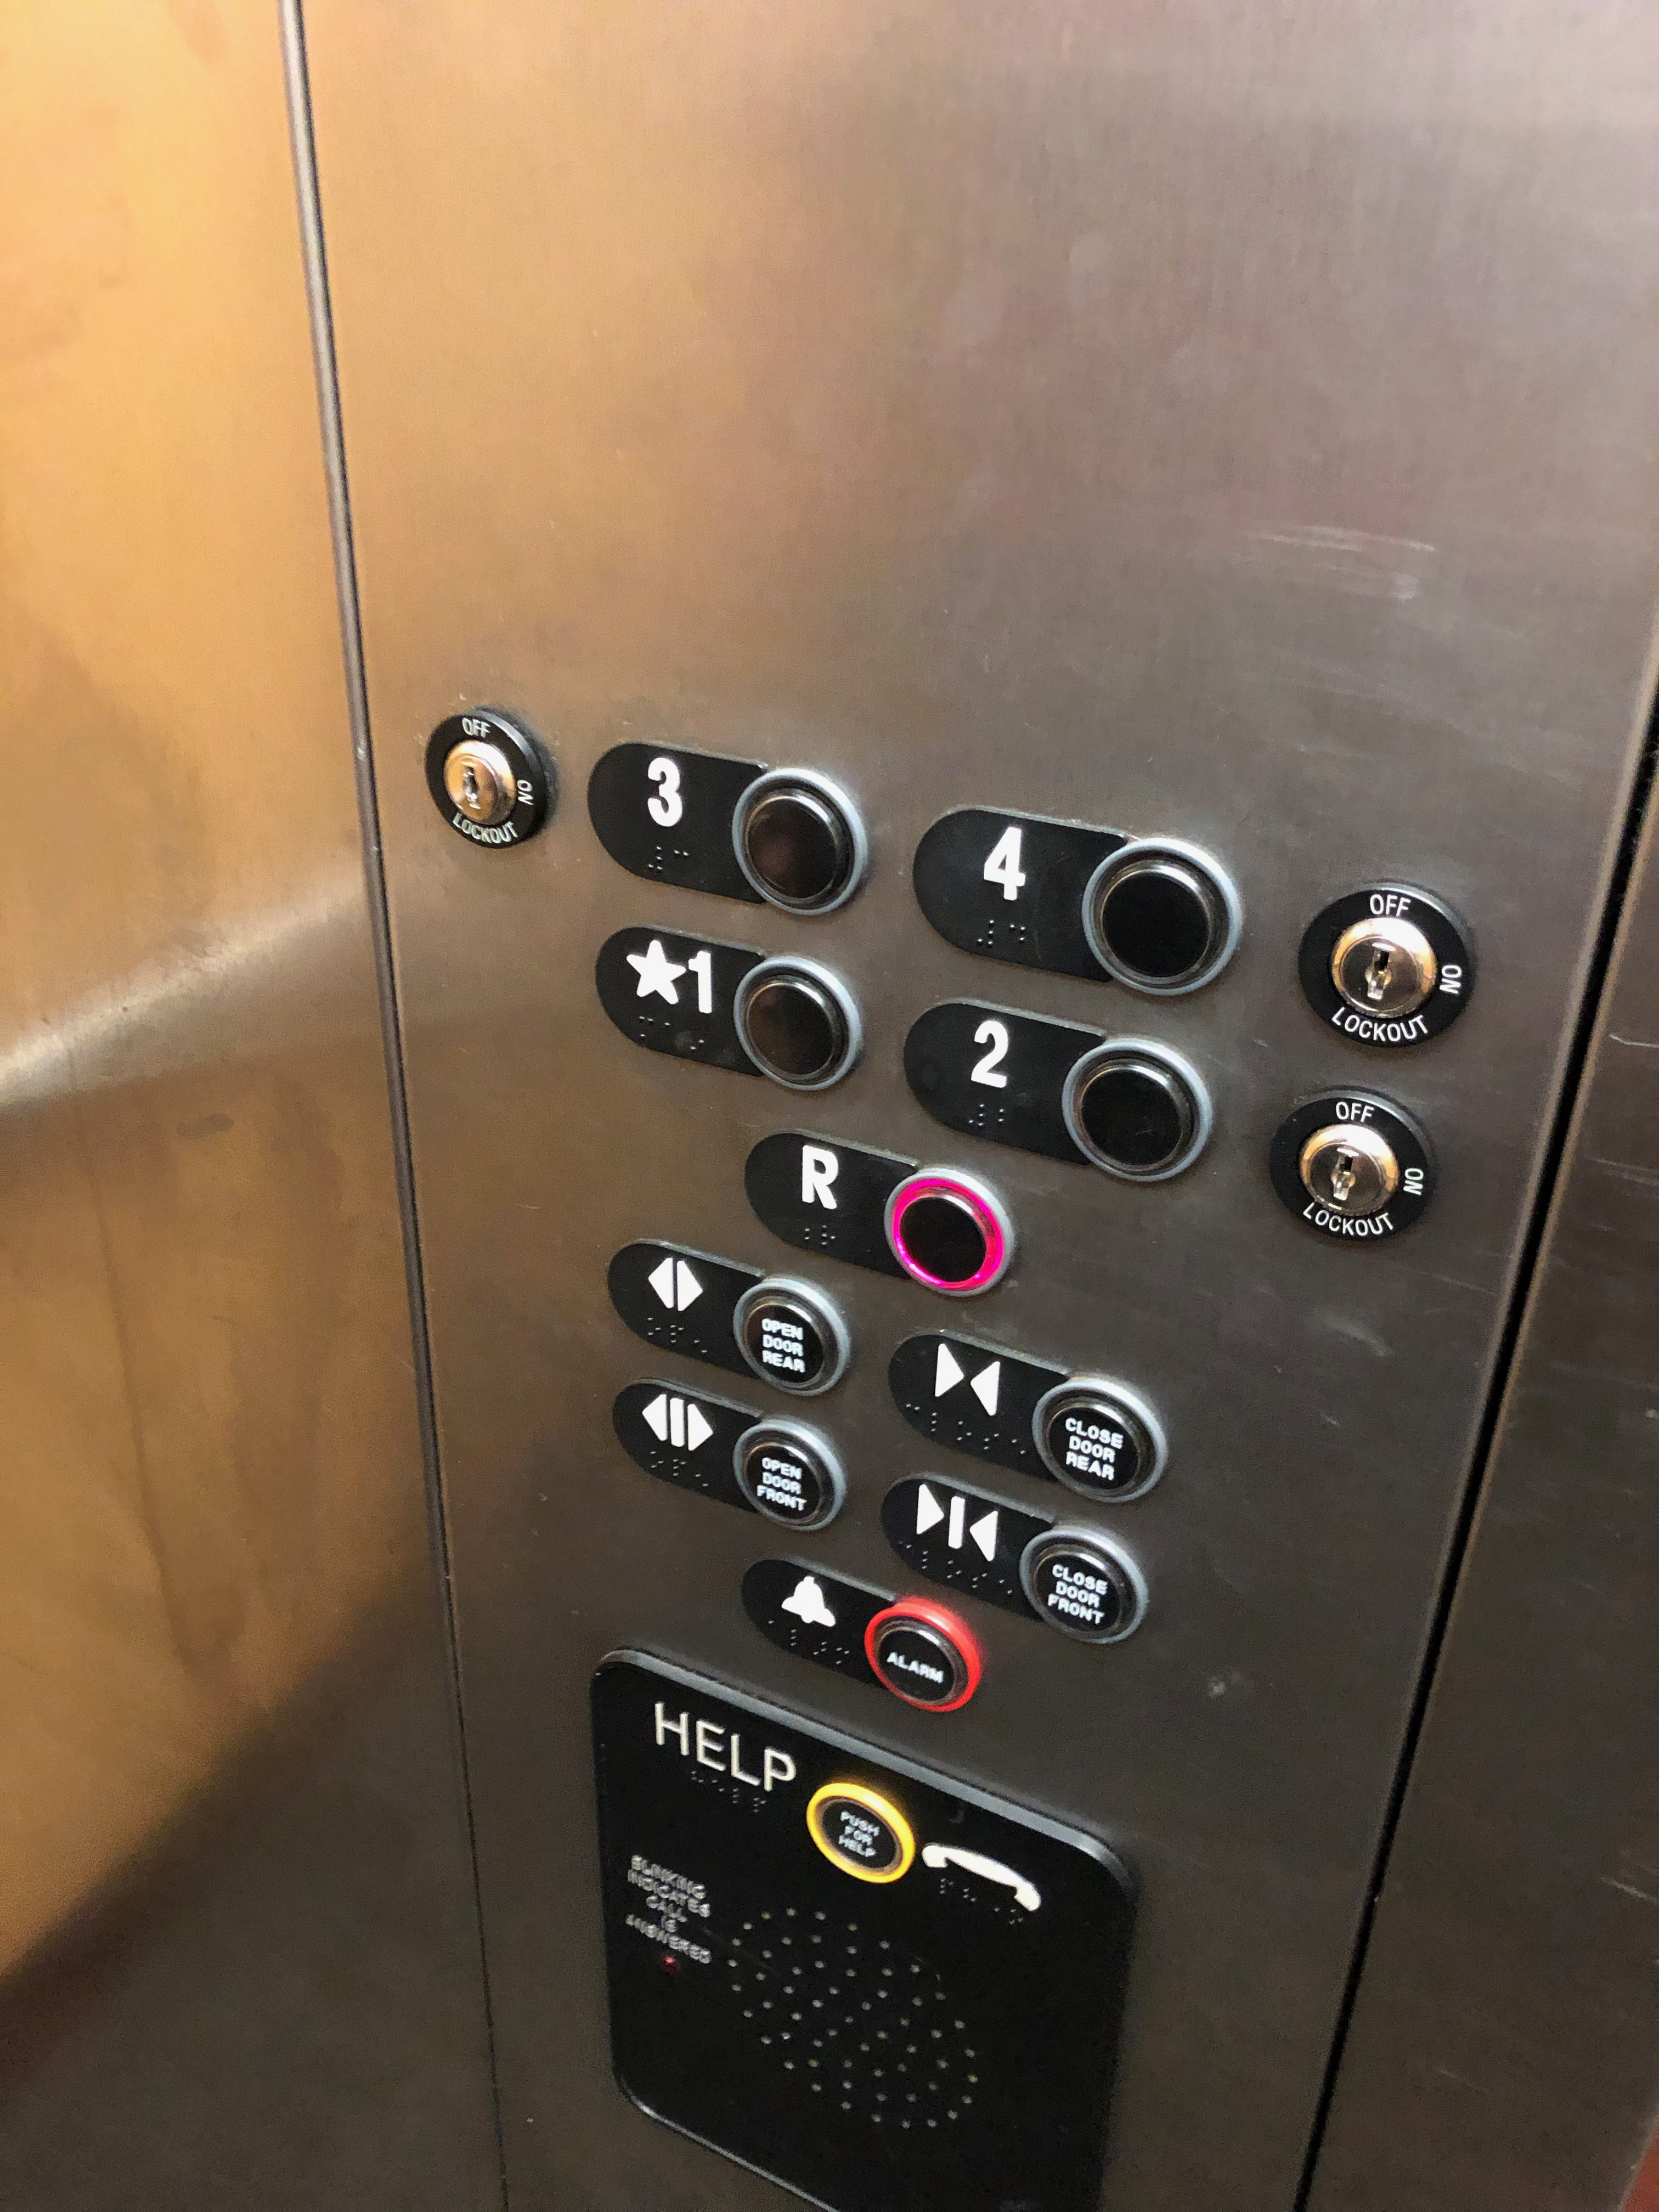 elevator control panel with Braille